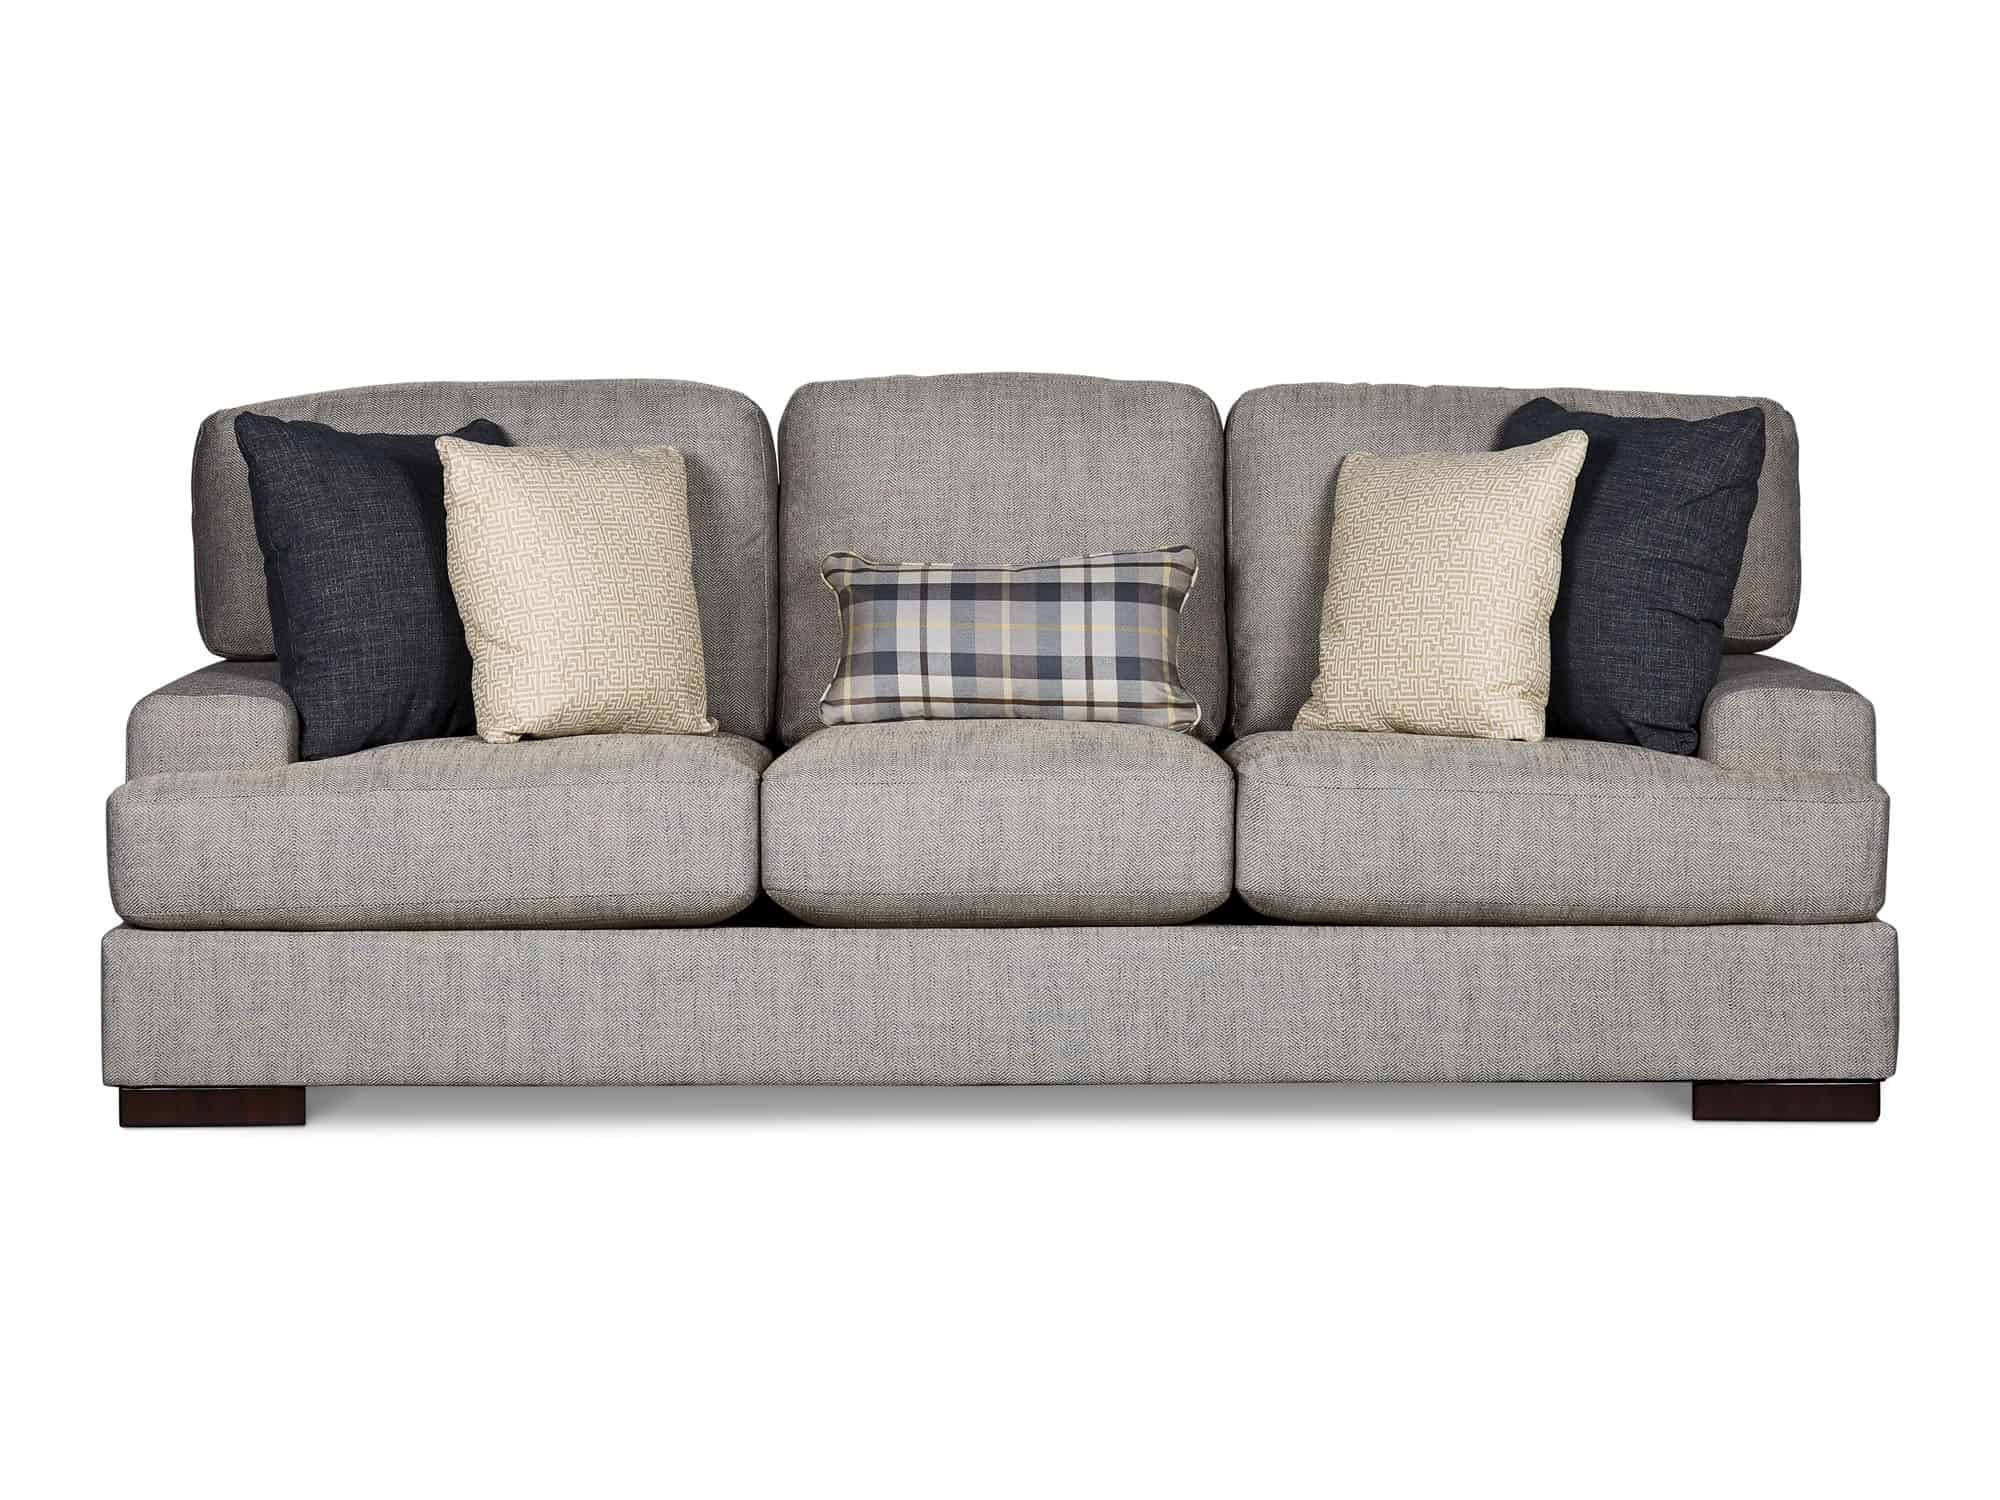 queen size sofa beds nz set in india online austwell | big save furniture